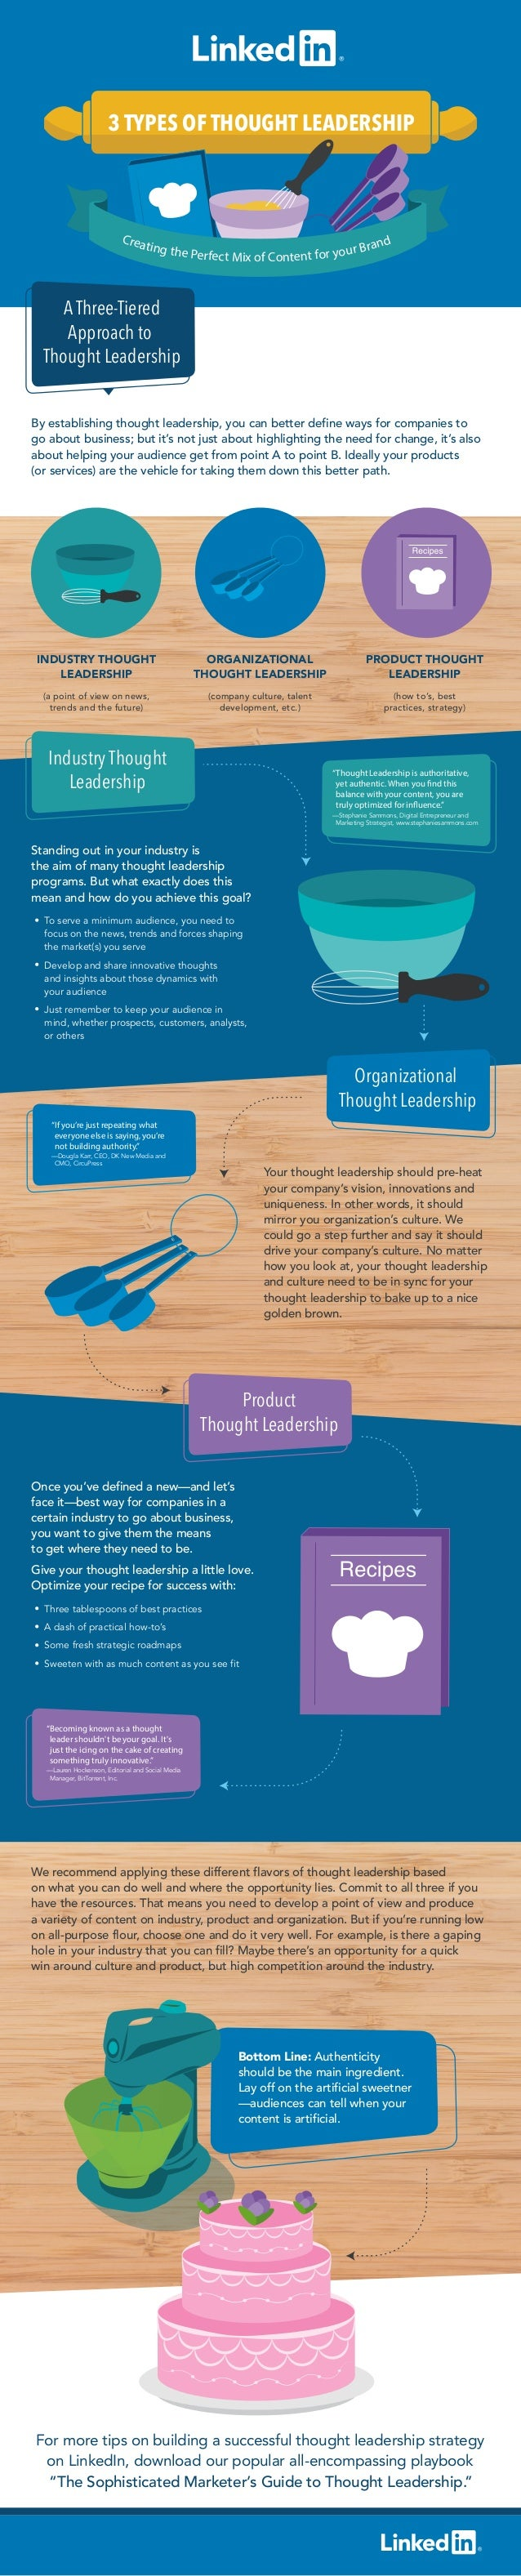 3 types of thought leadership creating the perfect mix of content fo industry thought leadership by establishing thought leadership you can better define ways for companies to